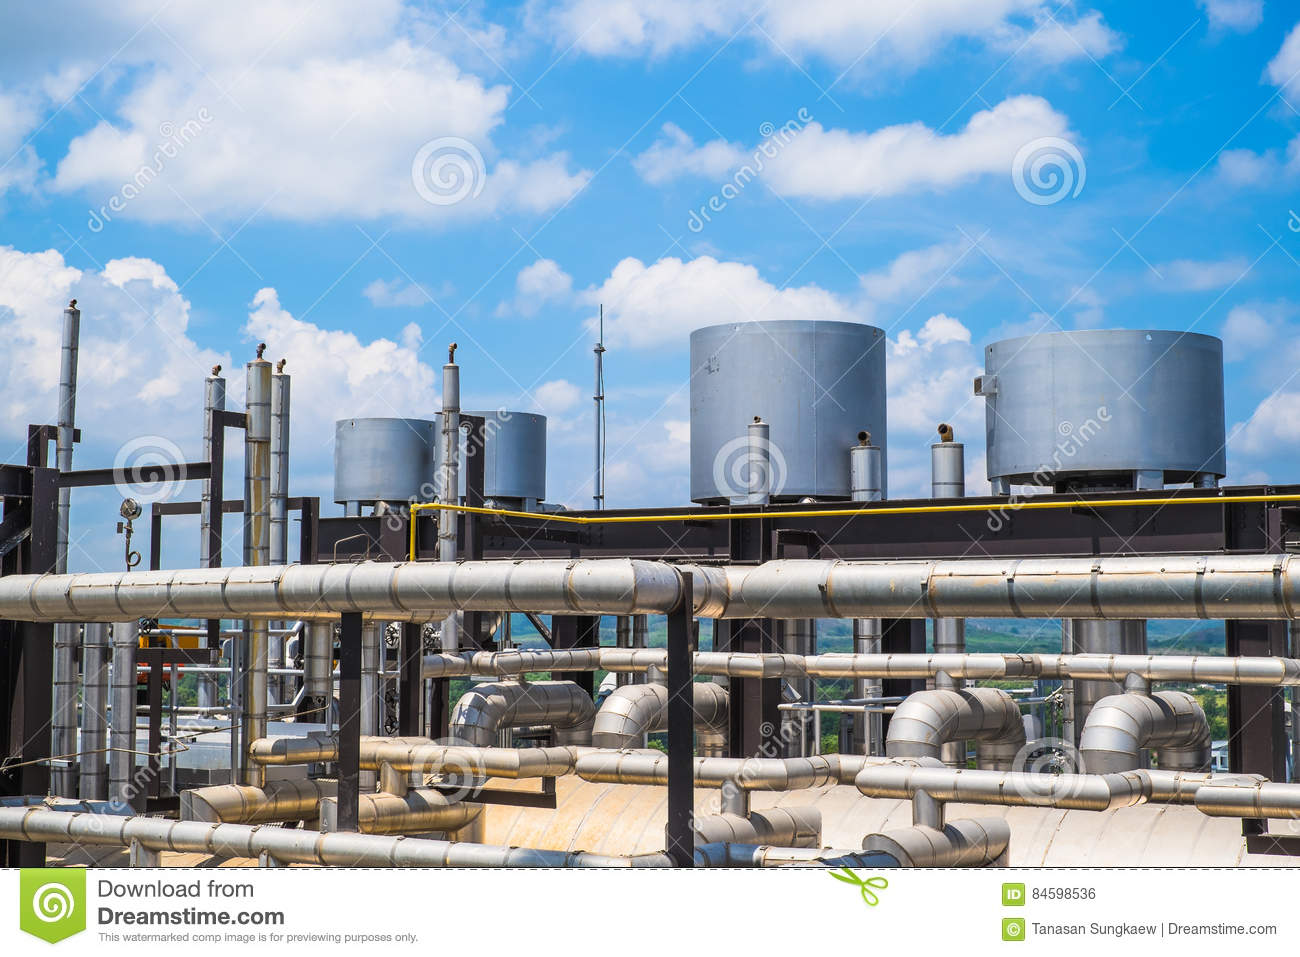 Top Floor Of Boiler In Fuel Gas Power Plant Stock Photo - Image of ...